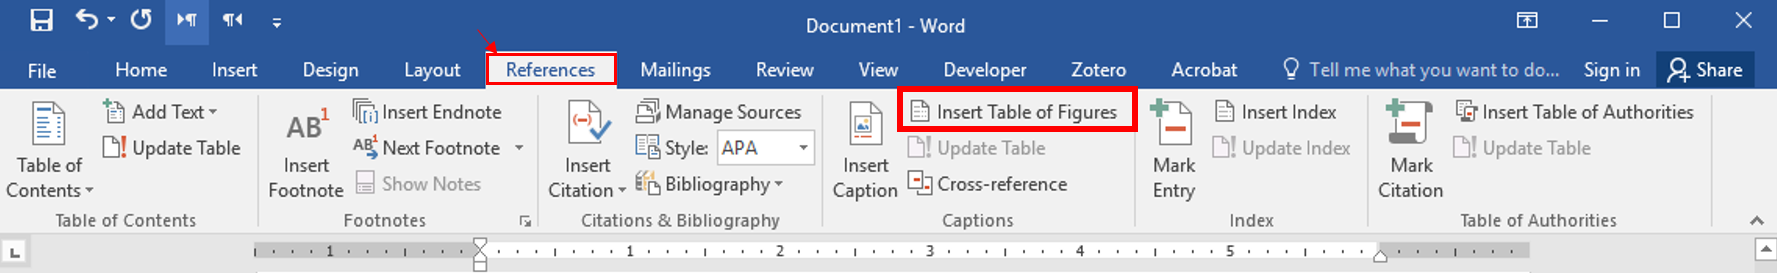 insert table of figures is located under the REFERENCES tab